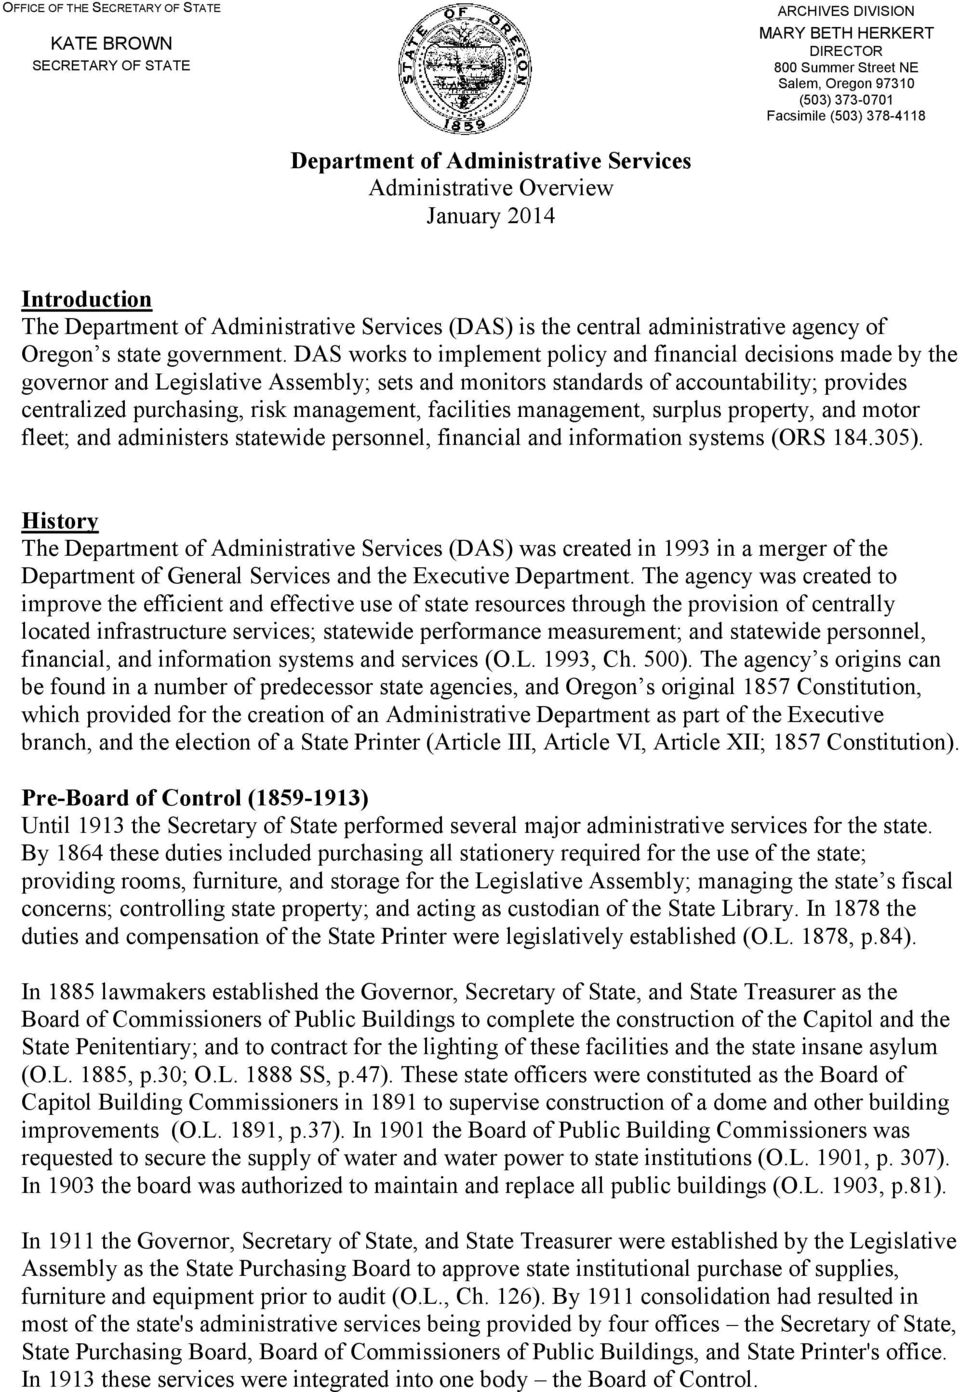 an overview of administrative agencies Administrative law is the body of law that governs the activities of administrative agencies of government government agency action can include rule making, adjudication, or the enforcement of a specific regulatory agenda administrative law is considered a branch of public lawas a body of law, administrative law deals with the decision-making of the administrative.